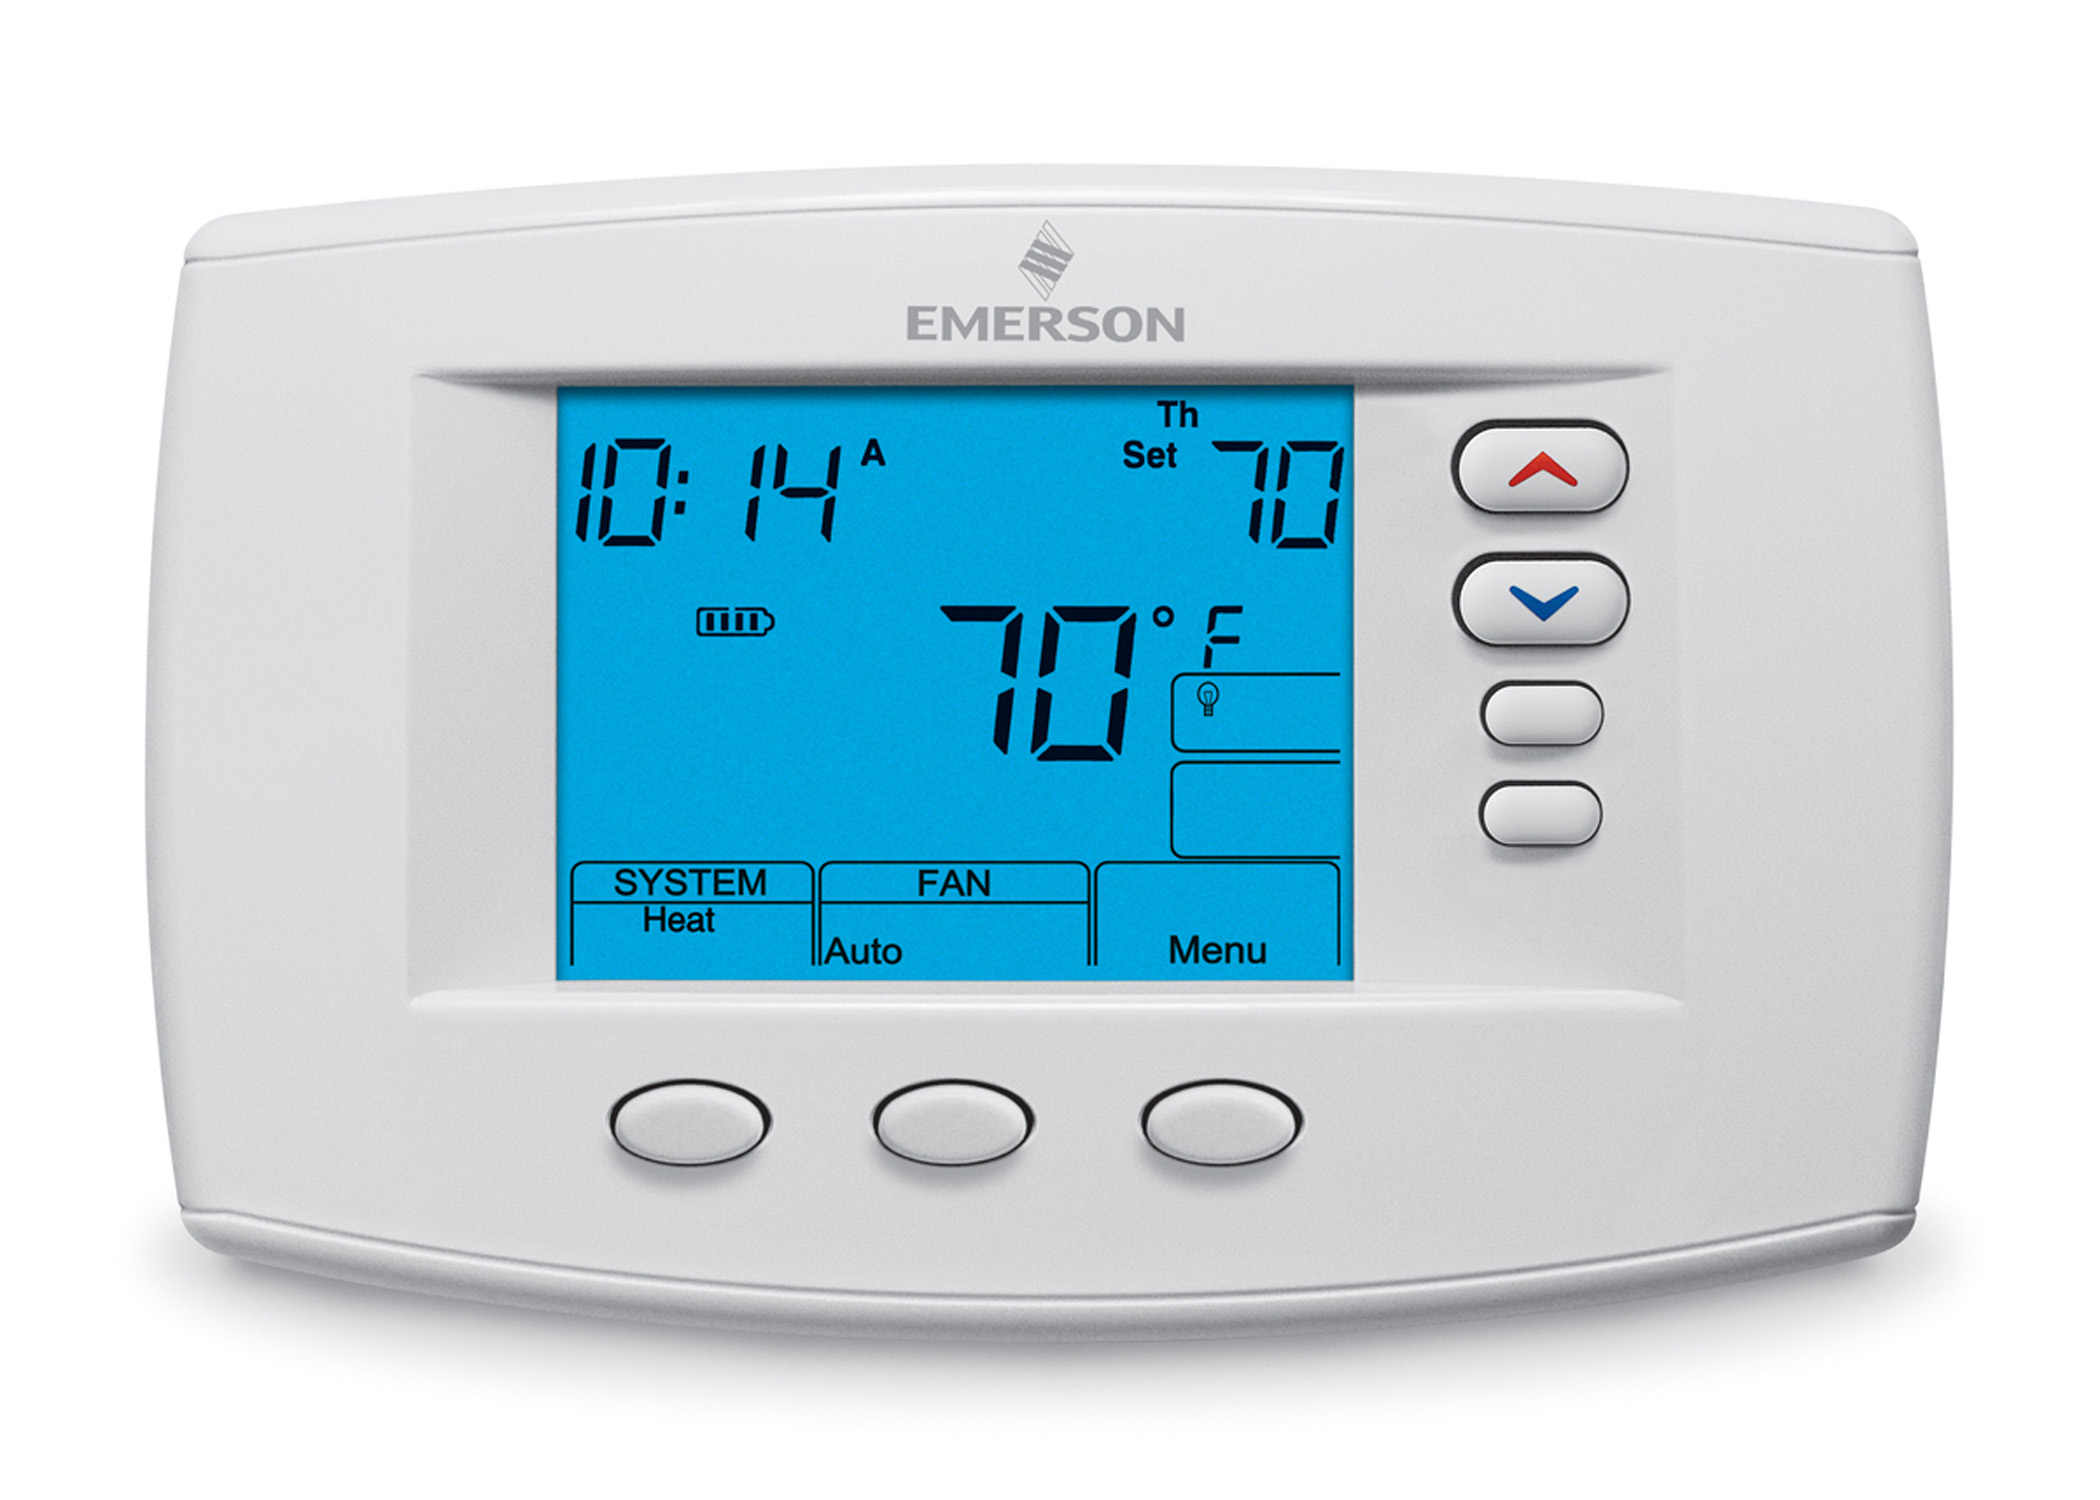 Save On Energy With A Programmable Thermostat